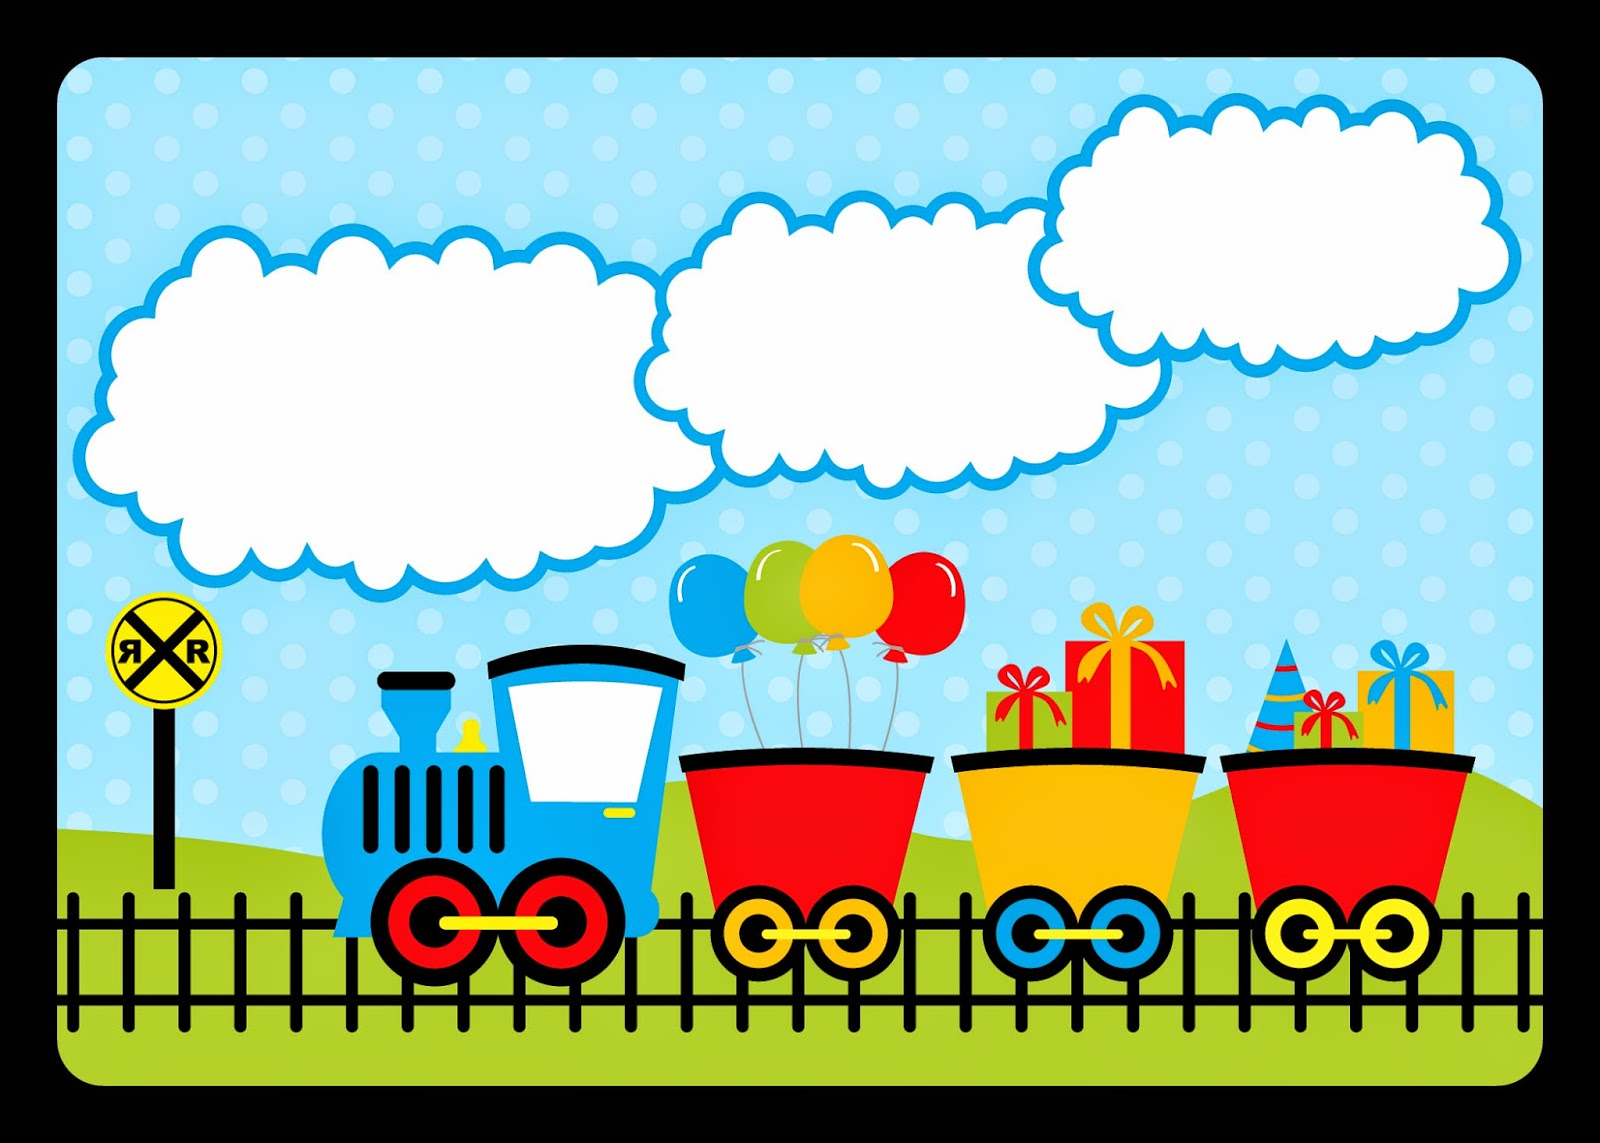 Train Party: Free Printable Invitations. | Is it for ...